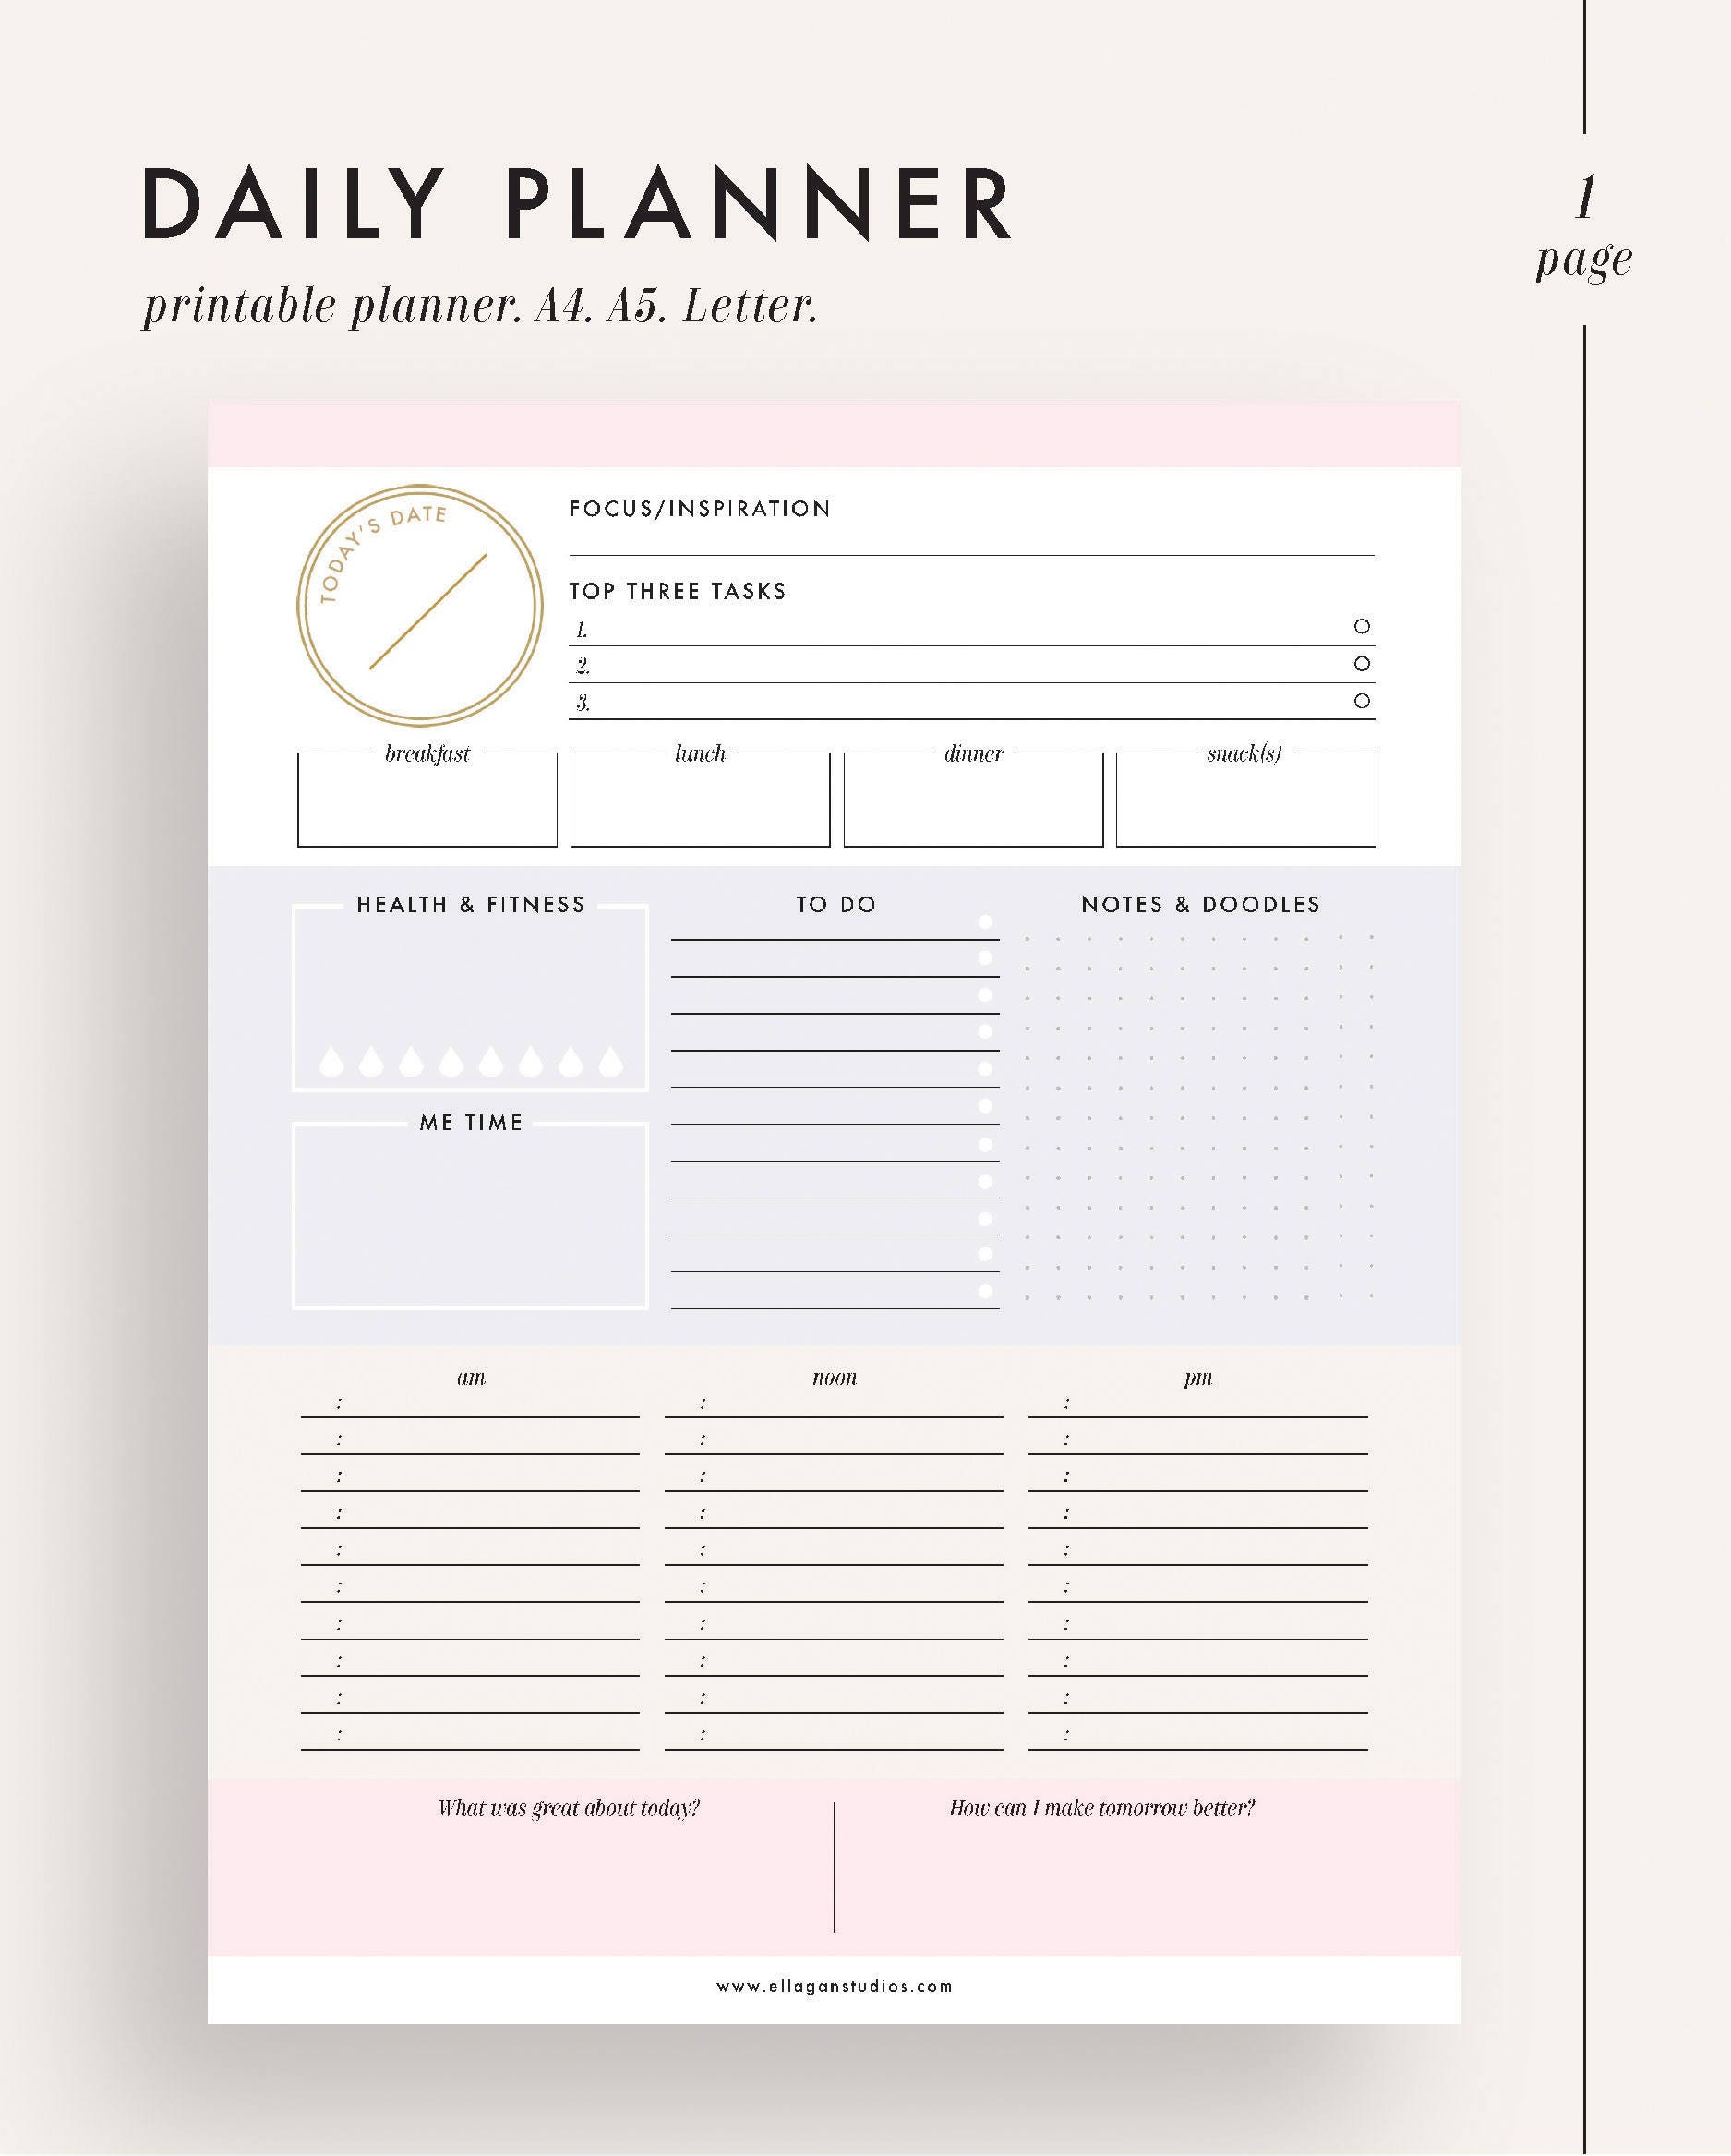 picture about Printable Planners called Each day planner, printable planner, planner inserts, planner printable, working day planner, everyday planner incorporate, day by day program, day-to-day organizer